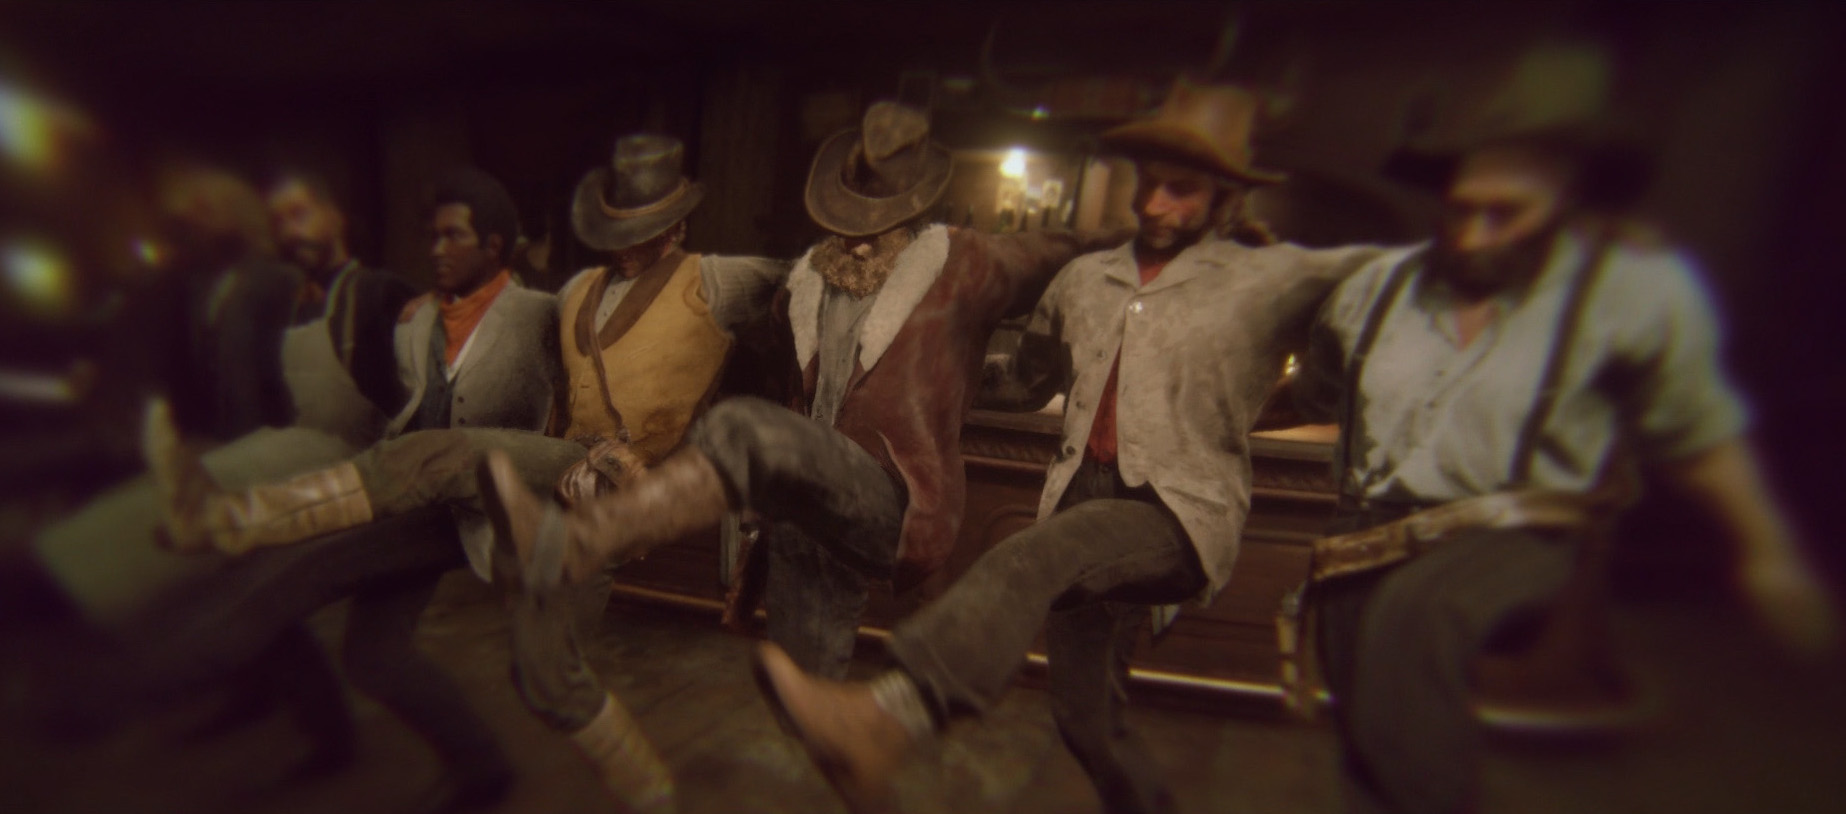 red dead redemption characters dancing